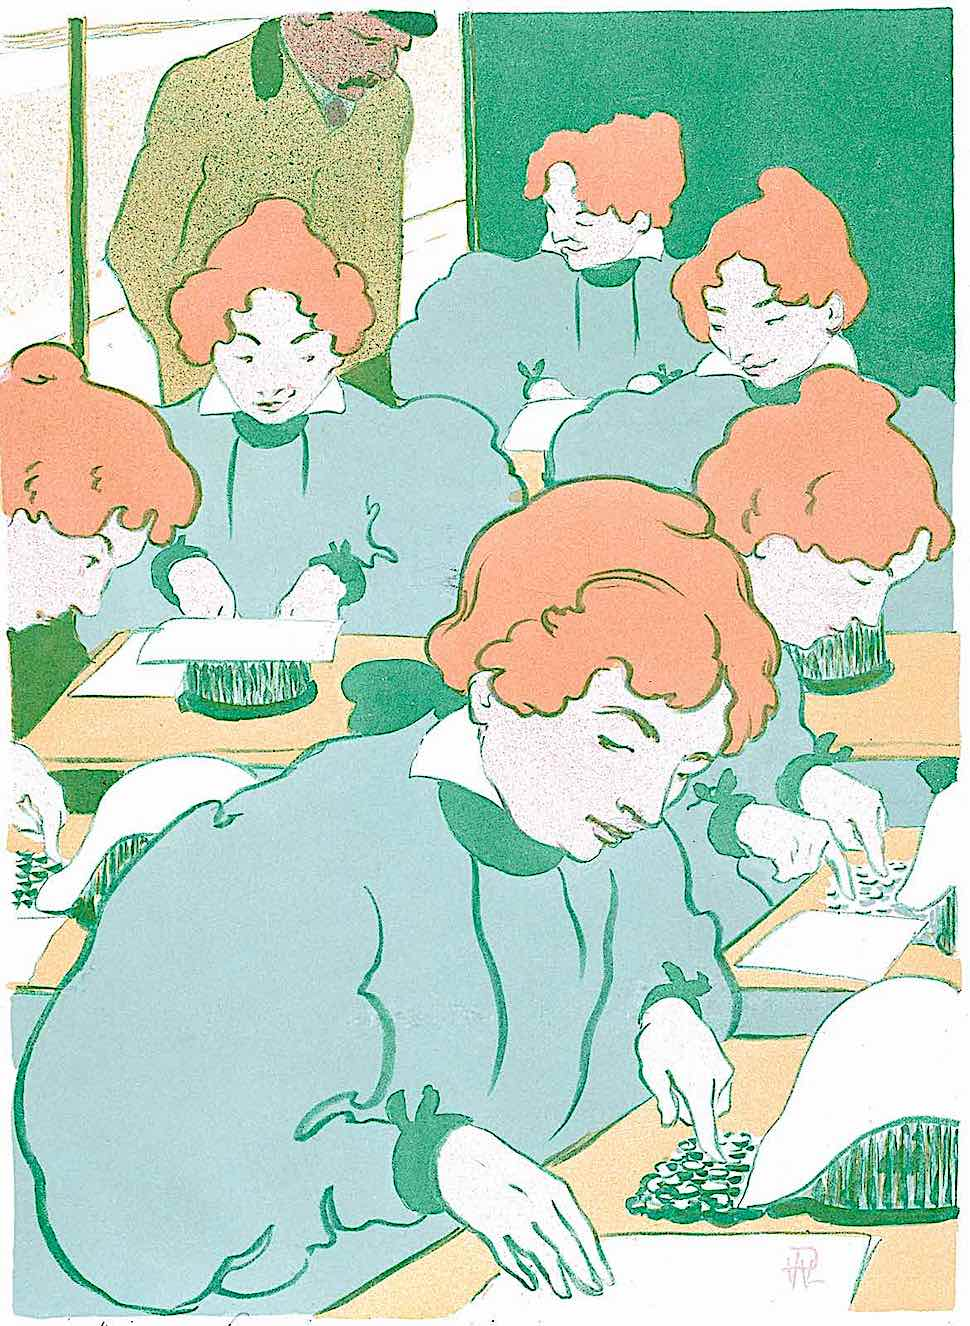 an R.G. Hermann-Paul illustration of identical women typing up copies at work